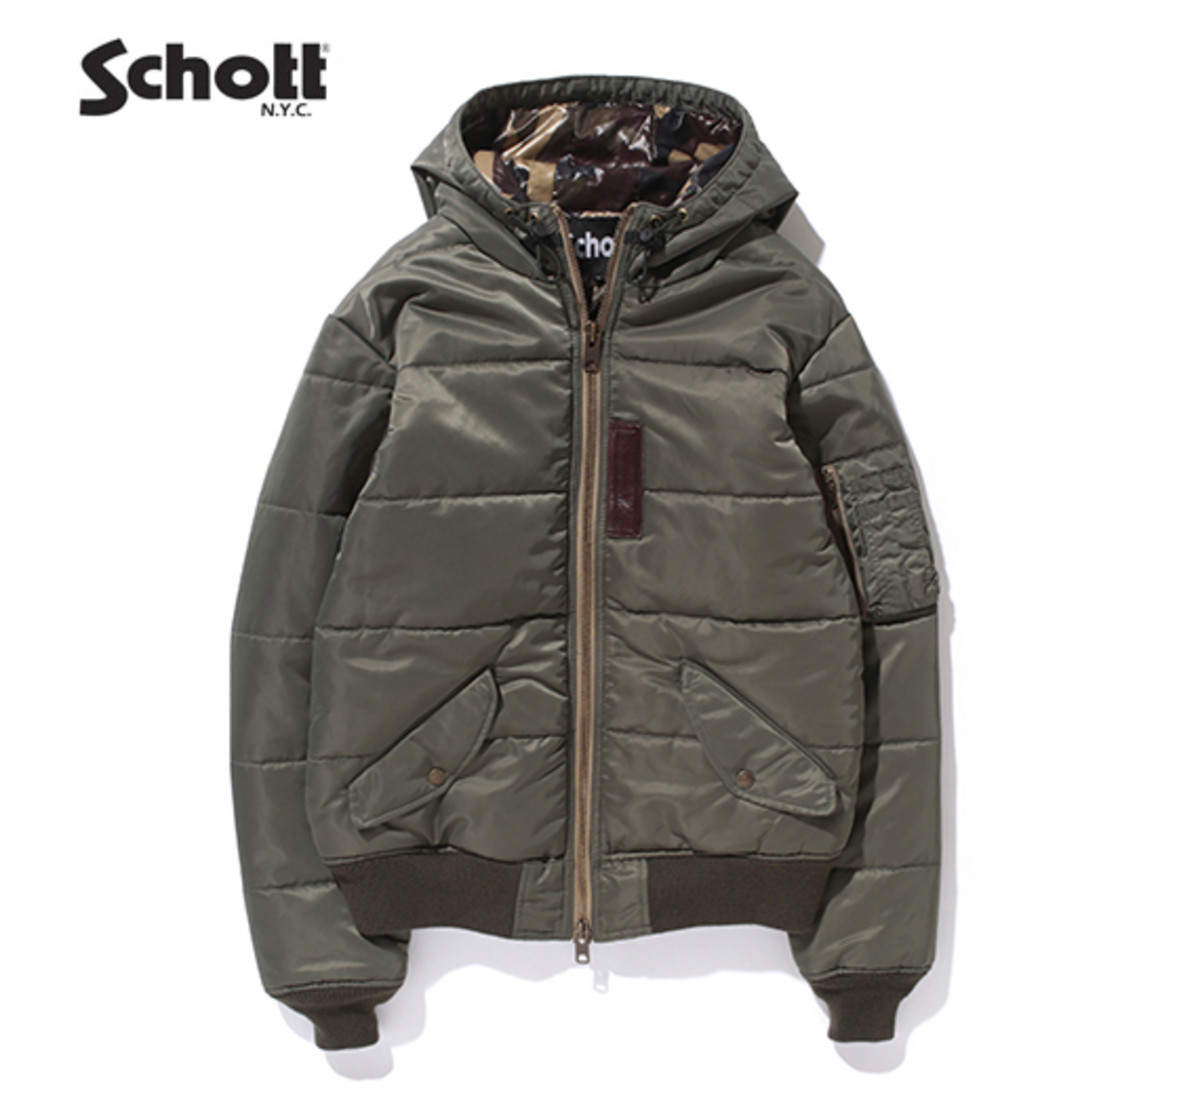 stussy-schott-ma1-puffy-jacket-01